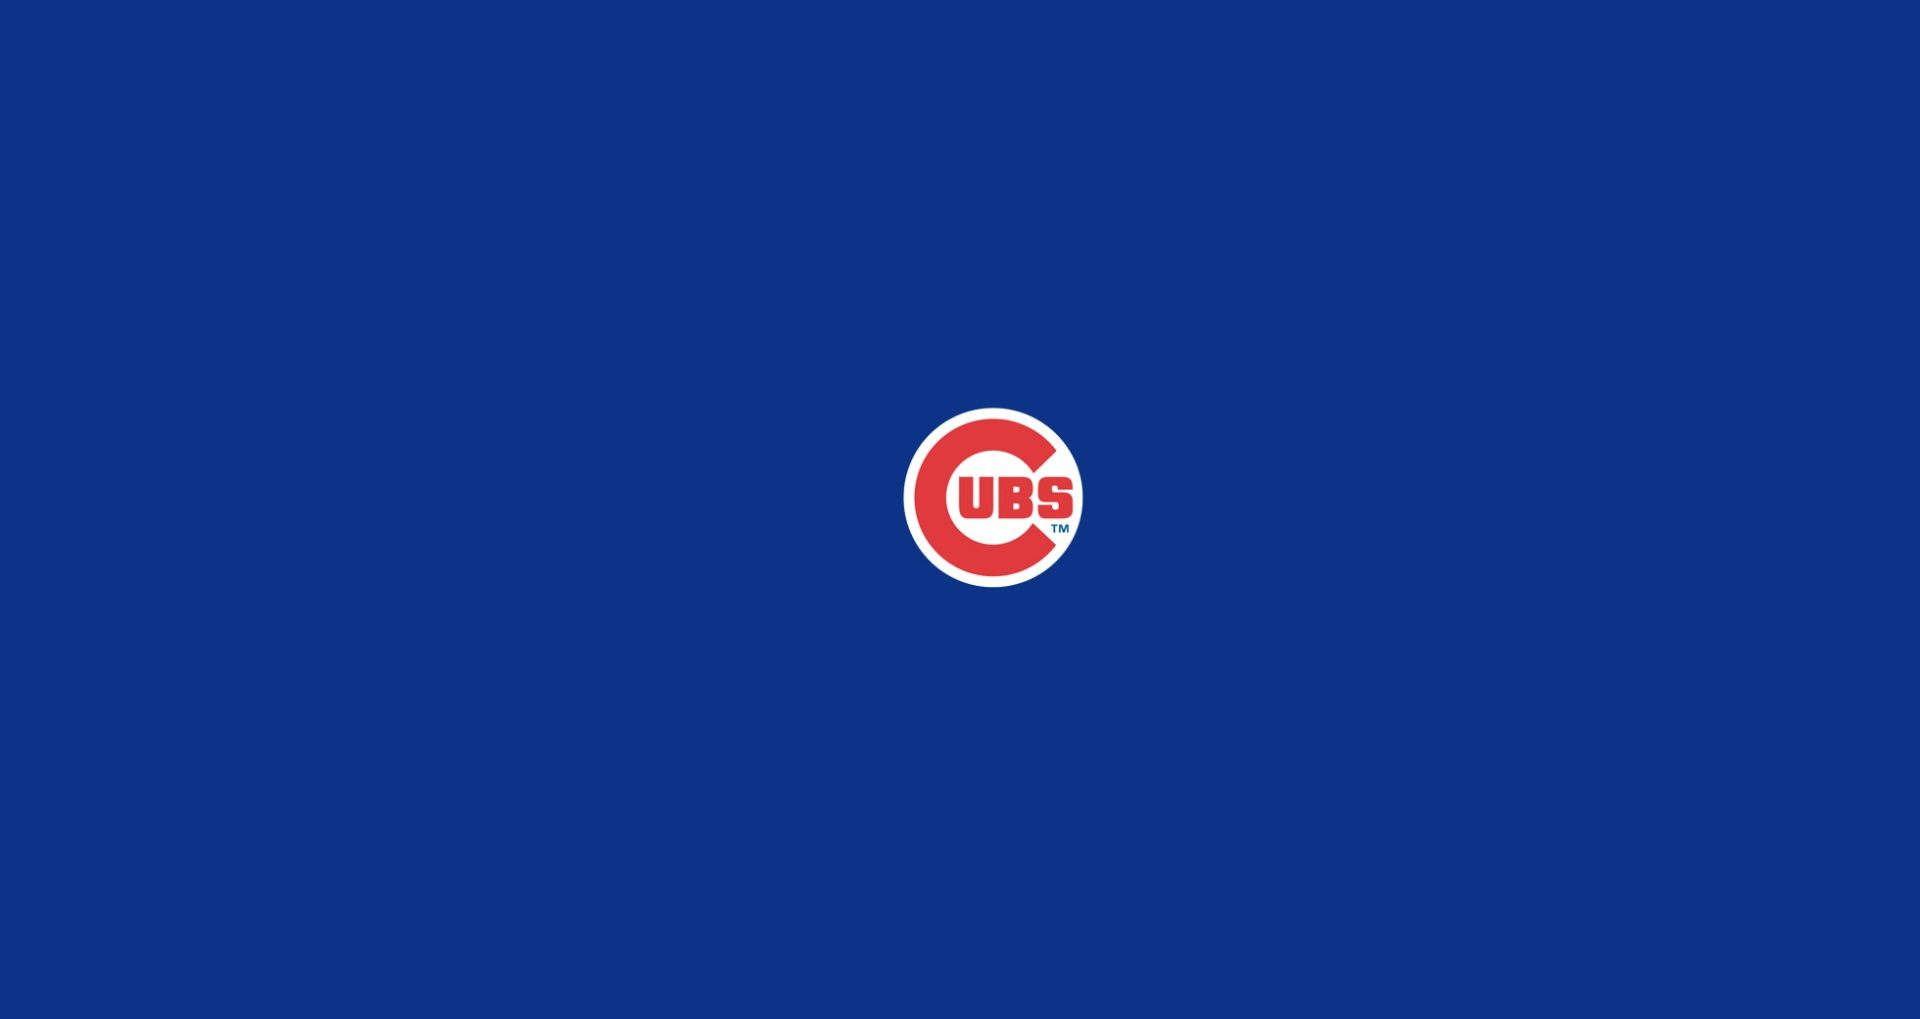 Cool Chicago Cubs Wallpaper 1080p   Wallpaper HD 1920x1019